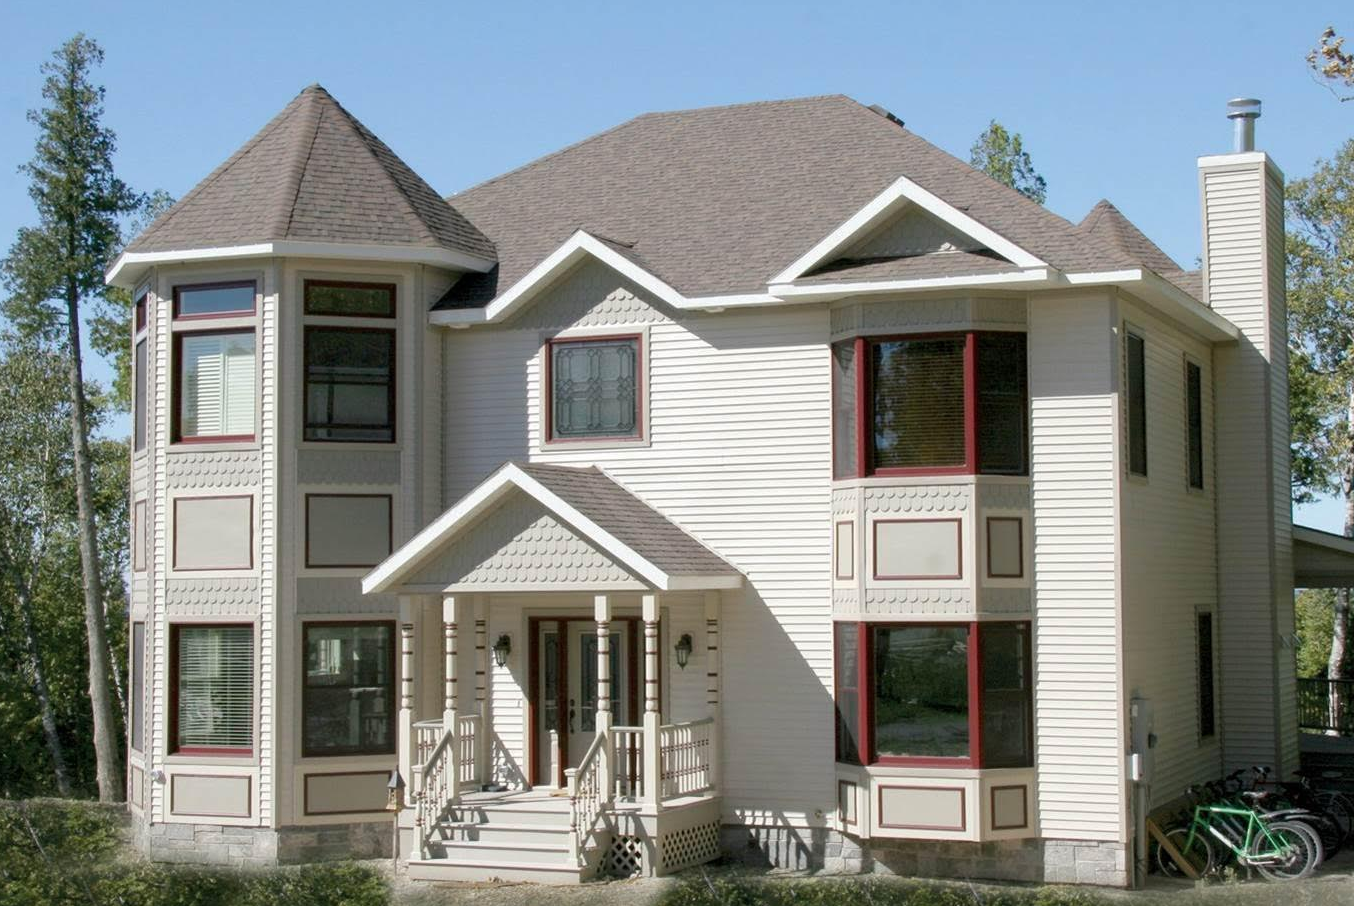 Custom Two Story Victorian Style Modular Home With Covered Entry And Decorative Accents Modular Homes Custom Modular Homes Accent Decor